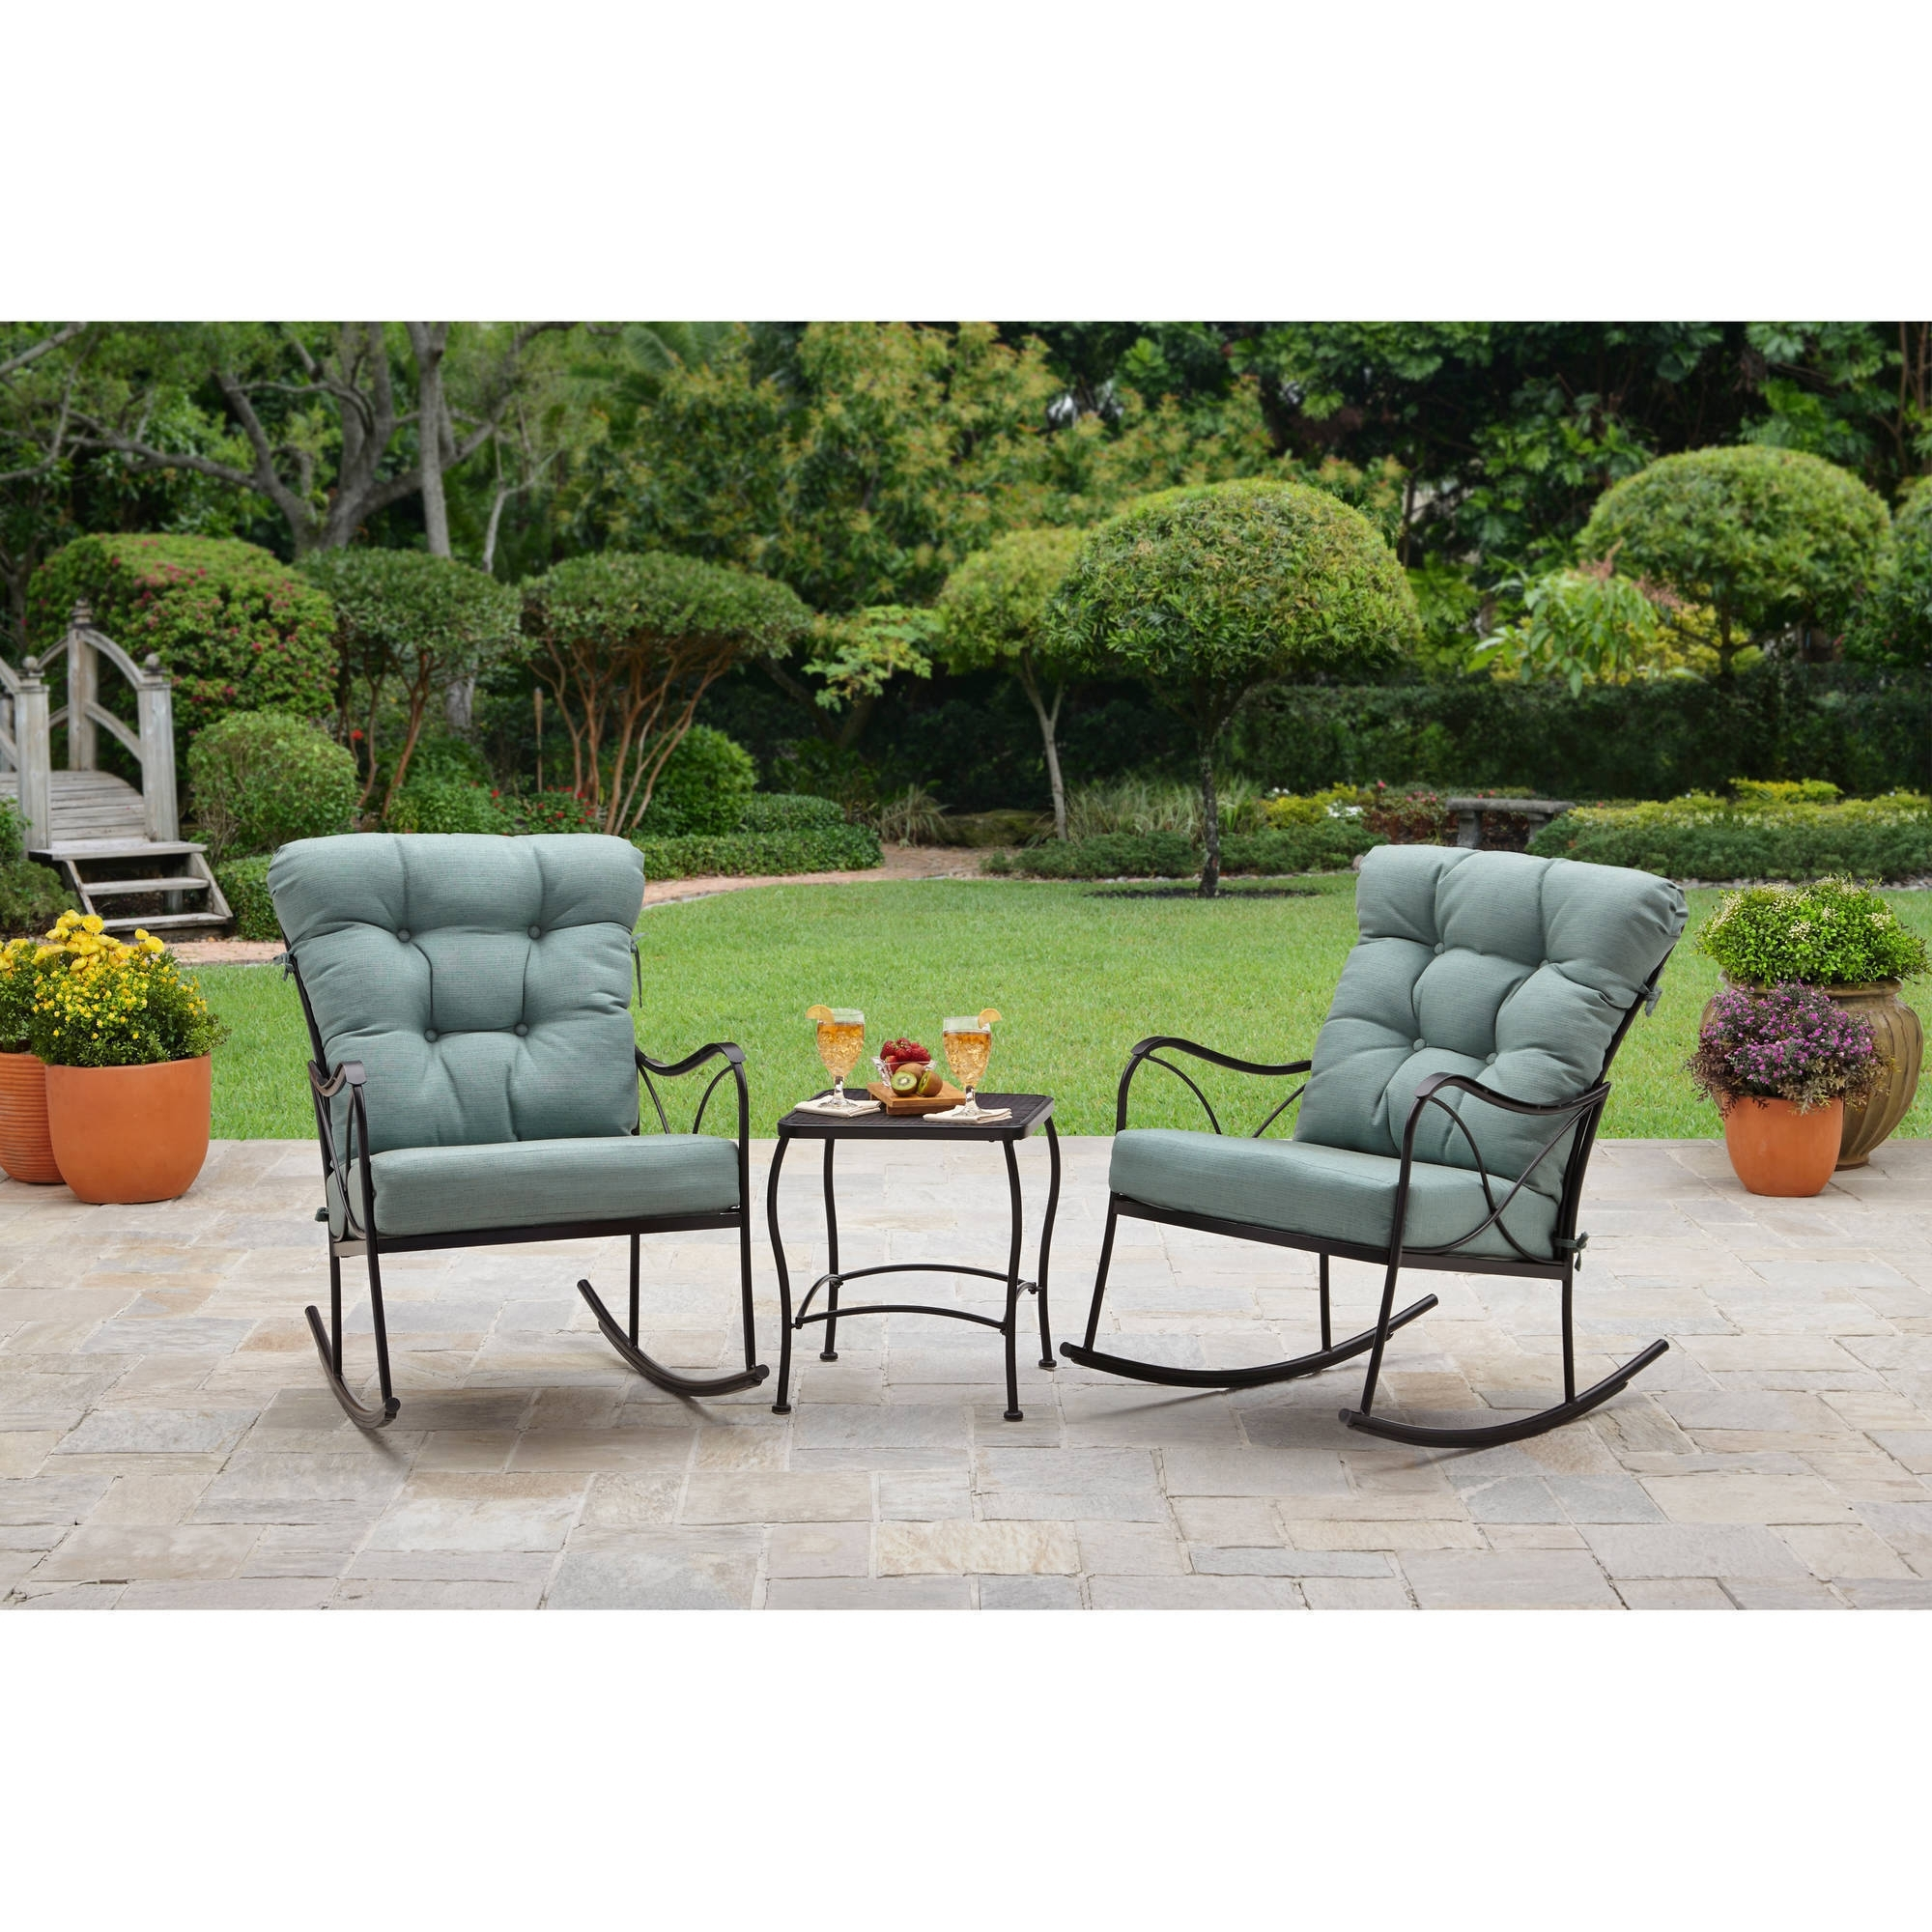 Outdoor Rocking Chairs With Table With Widely Used Better Homes And Gardens Seacliff Patio Furniture Collection (View 4 of 15)